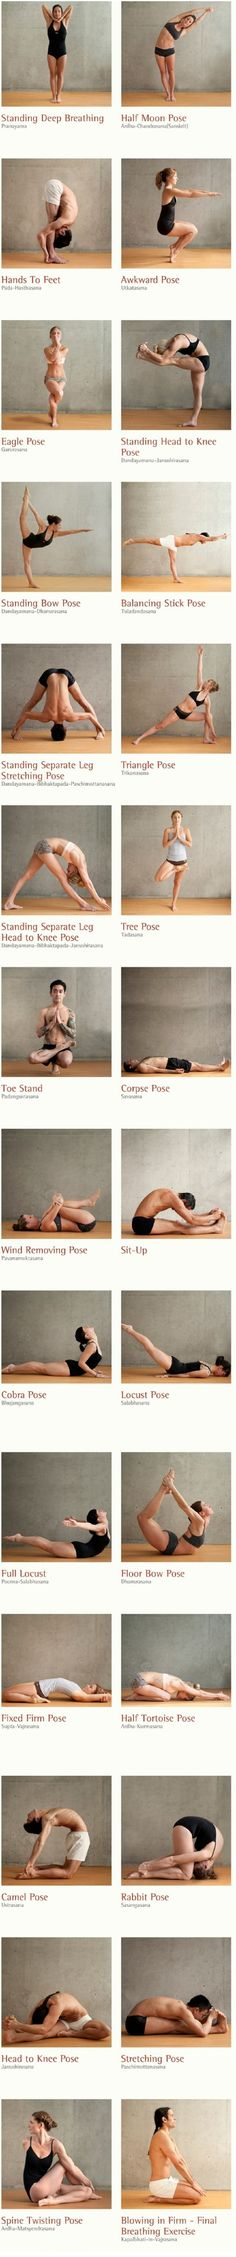 The best yoga poses filmstrip. Here are 26 different yoga poses and 2 breathing excercises to work out your body inside out. Stimulate your organs, glands and nerves. Increse the oxidization through your whole body.